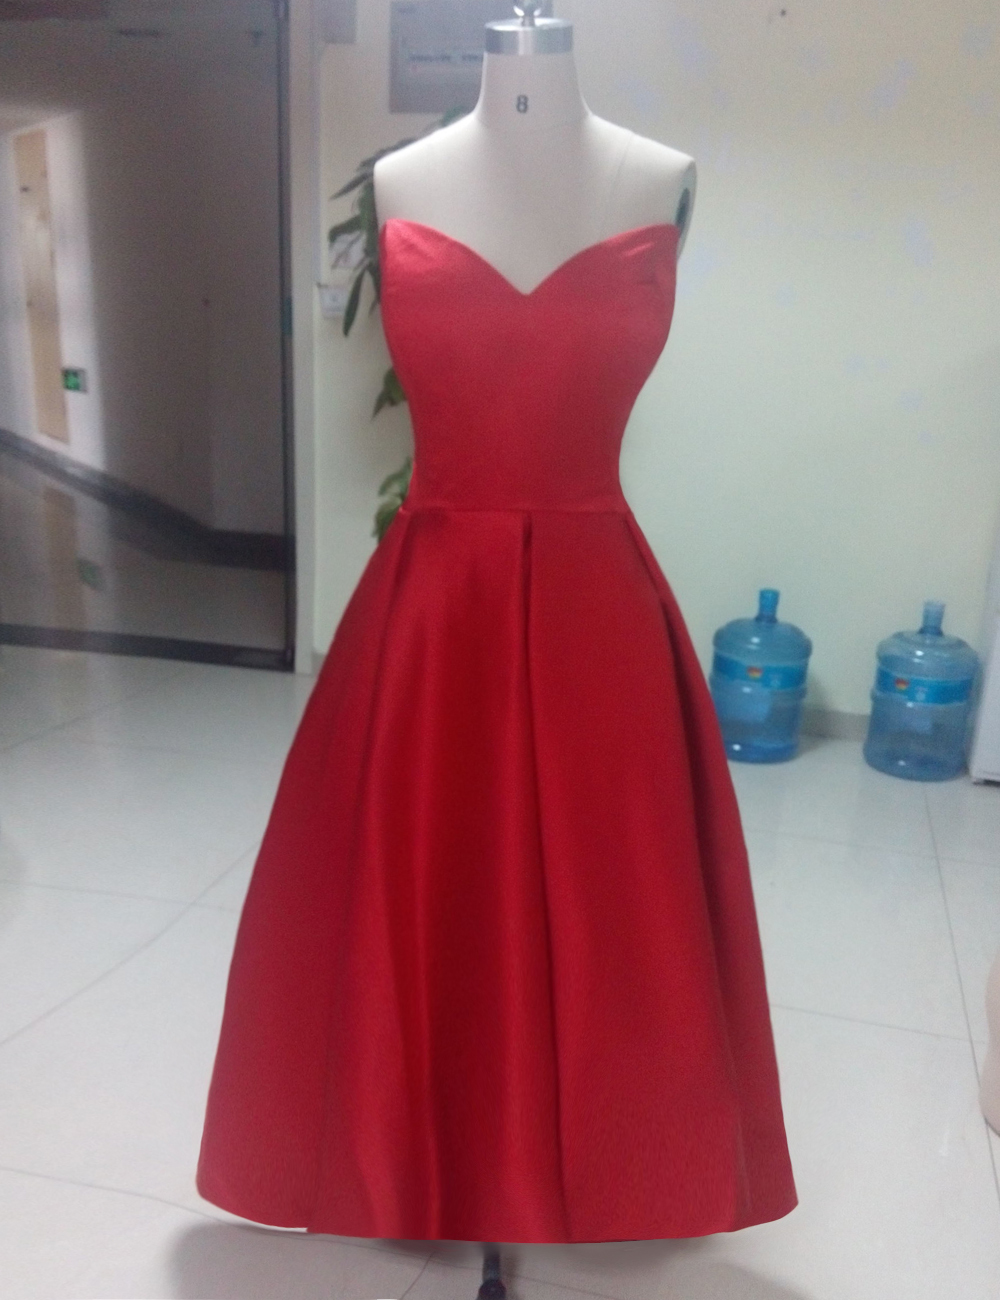 Hot Red   Prom     Dress   Short Front Long Back vestidos de gala 2015 Sweetheart Elegant   Dress   For   Prom   Party Gown Free Shipping LG739